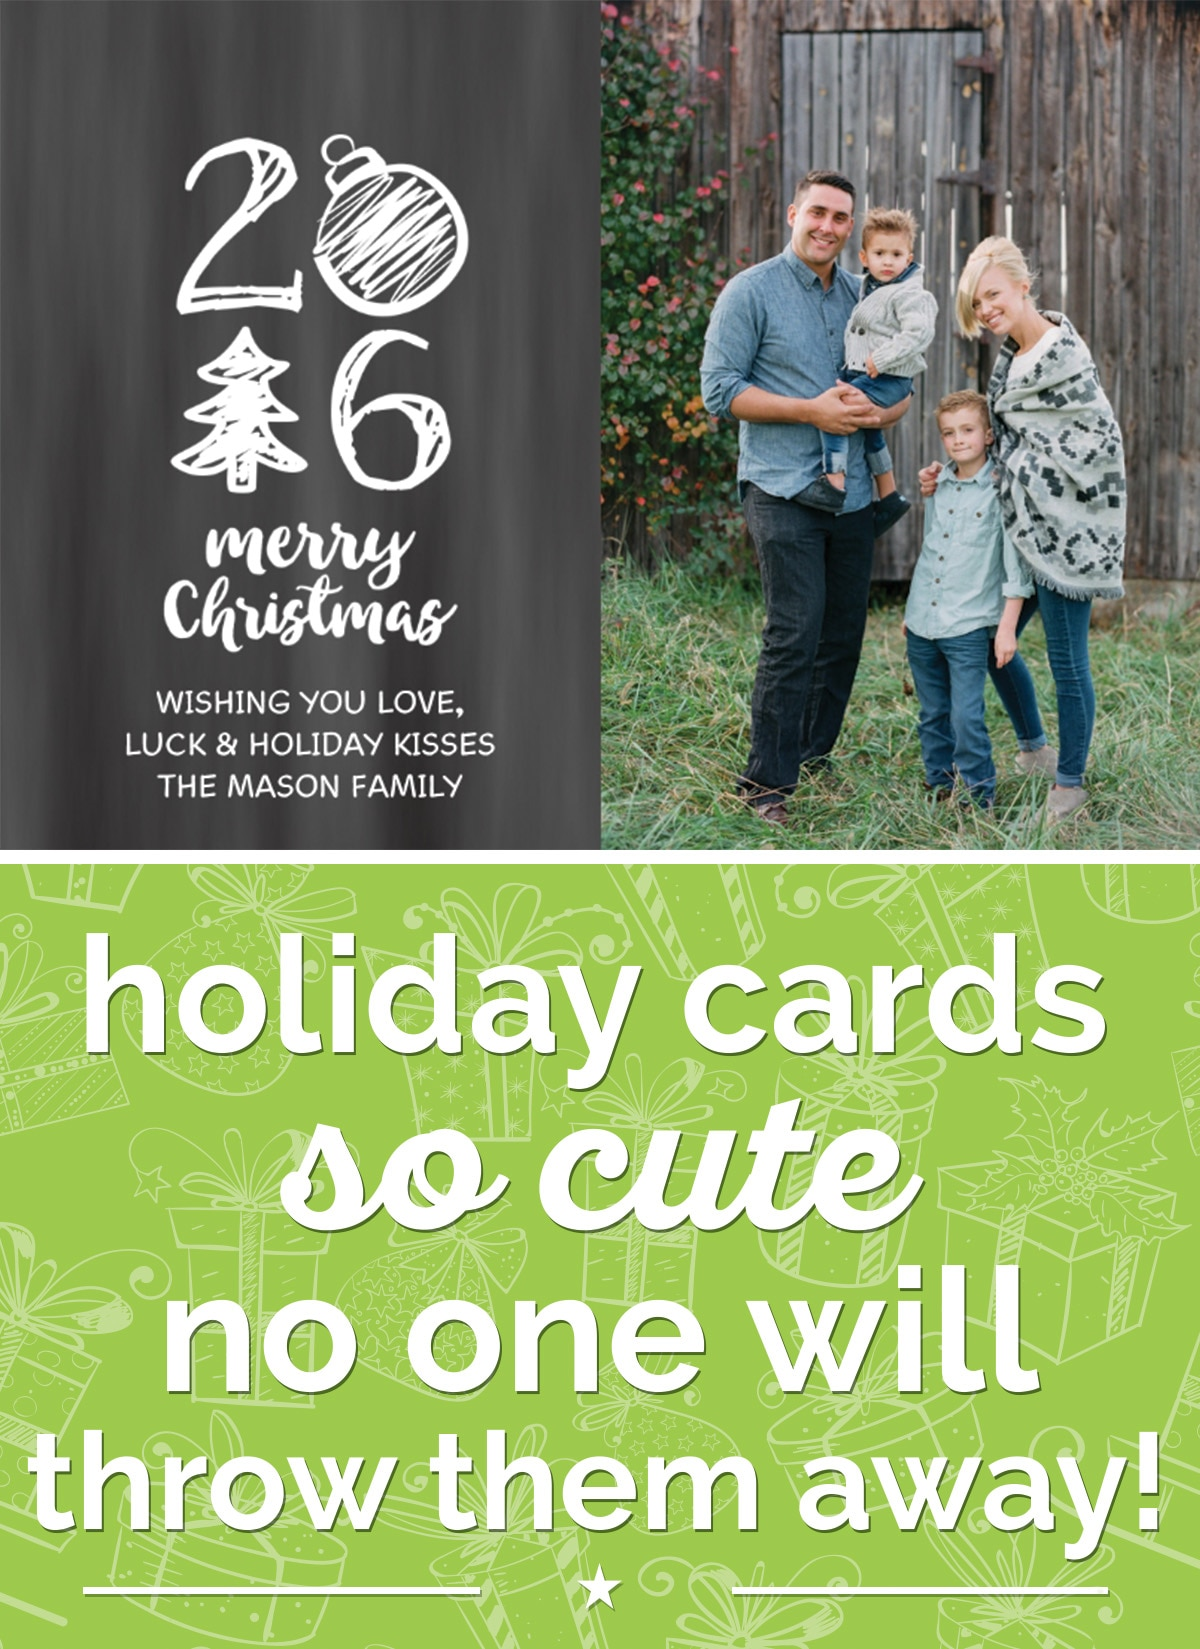 Holiday Cards So Cute No One Will Throw Them Away - thegoodstuff